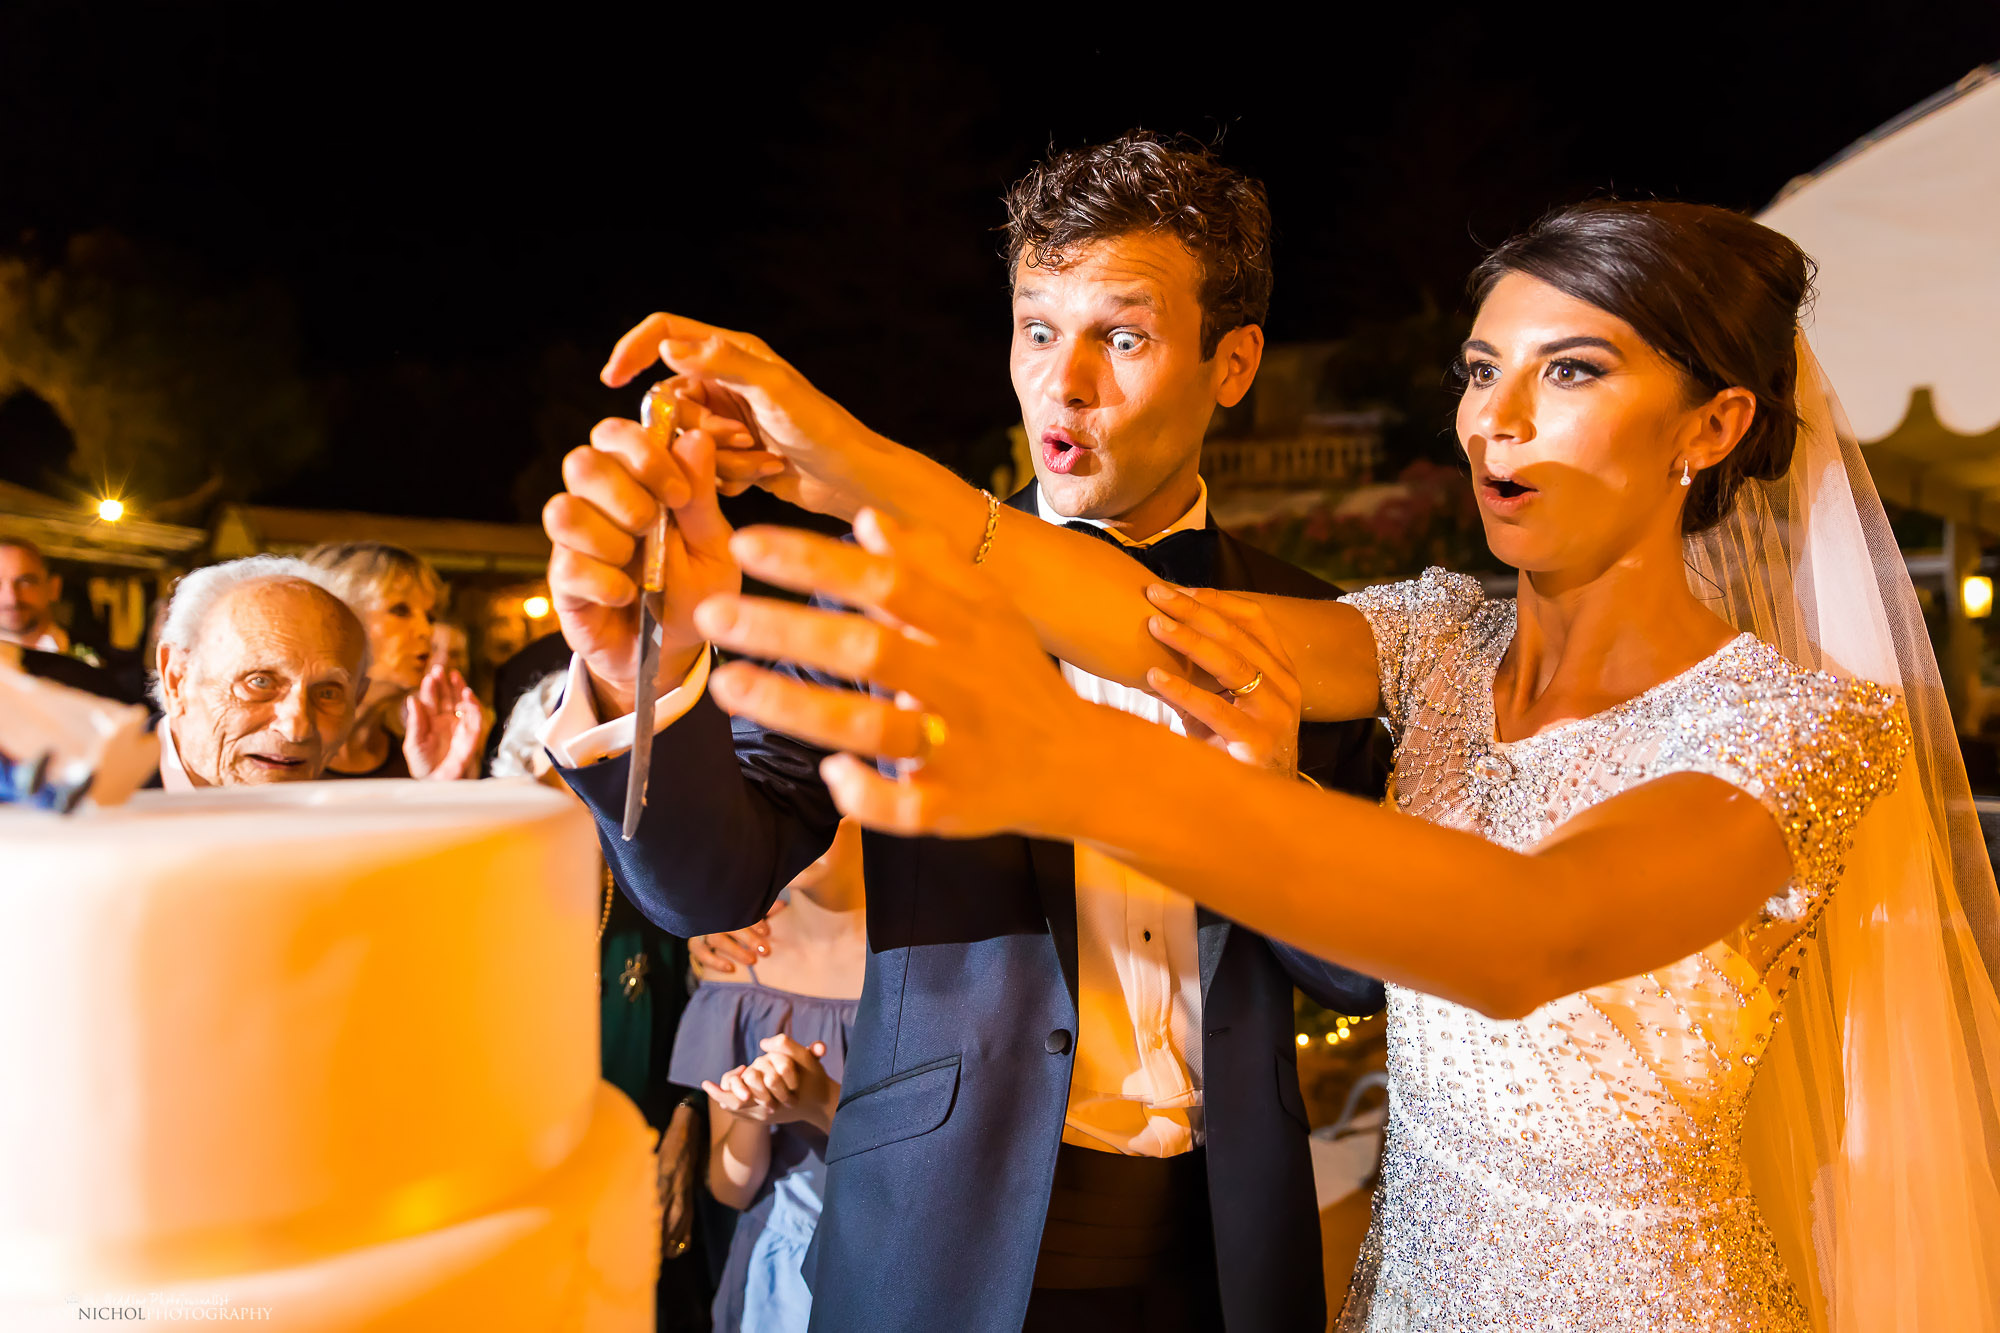 Funny expression on the bride and grooms face during their wedding cake cutting as their cake topper falls off. Photo by Elliot Nichol Photography based in Newcastle Upon Tyne.